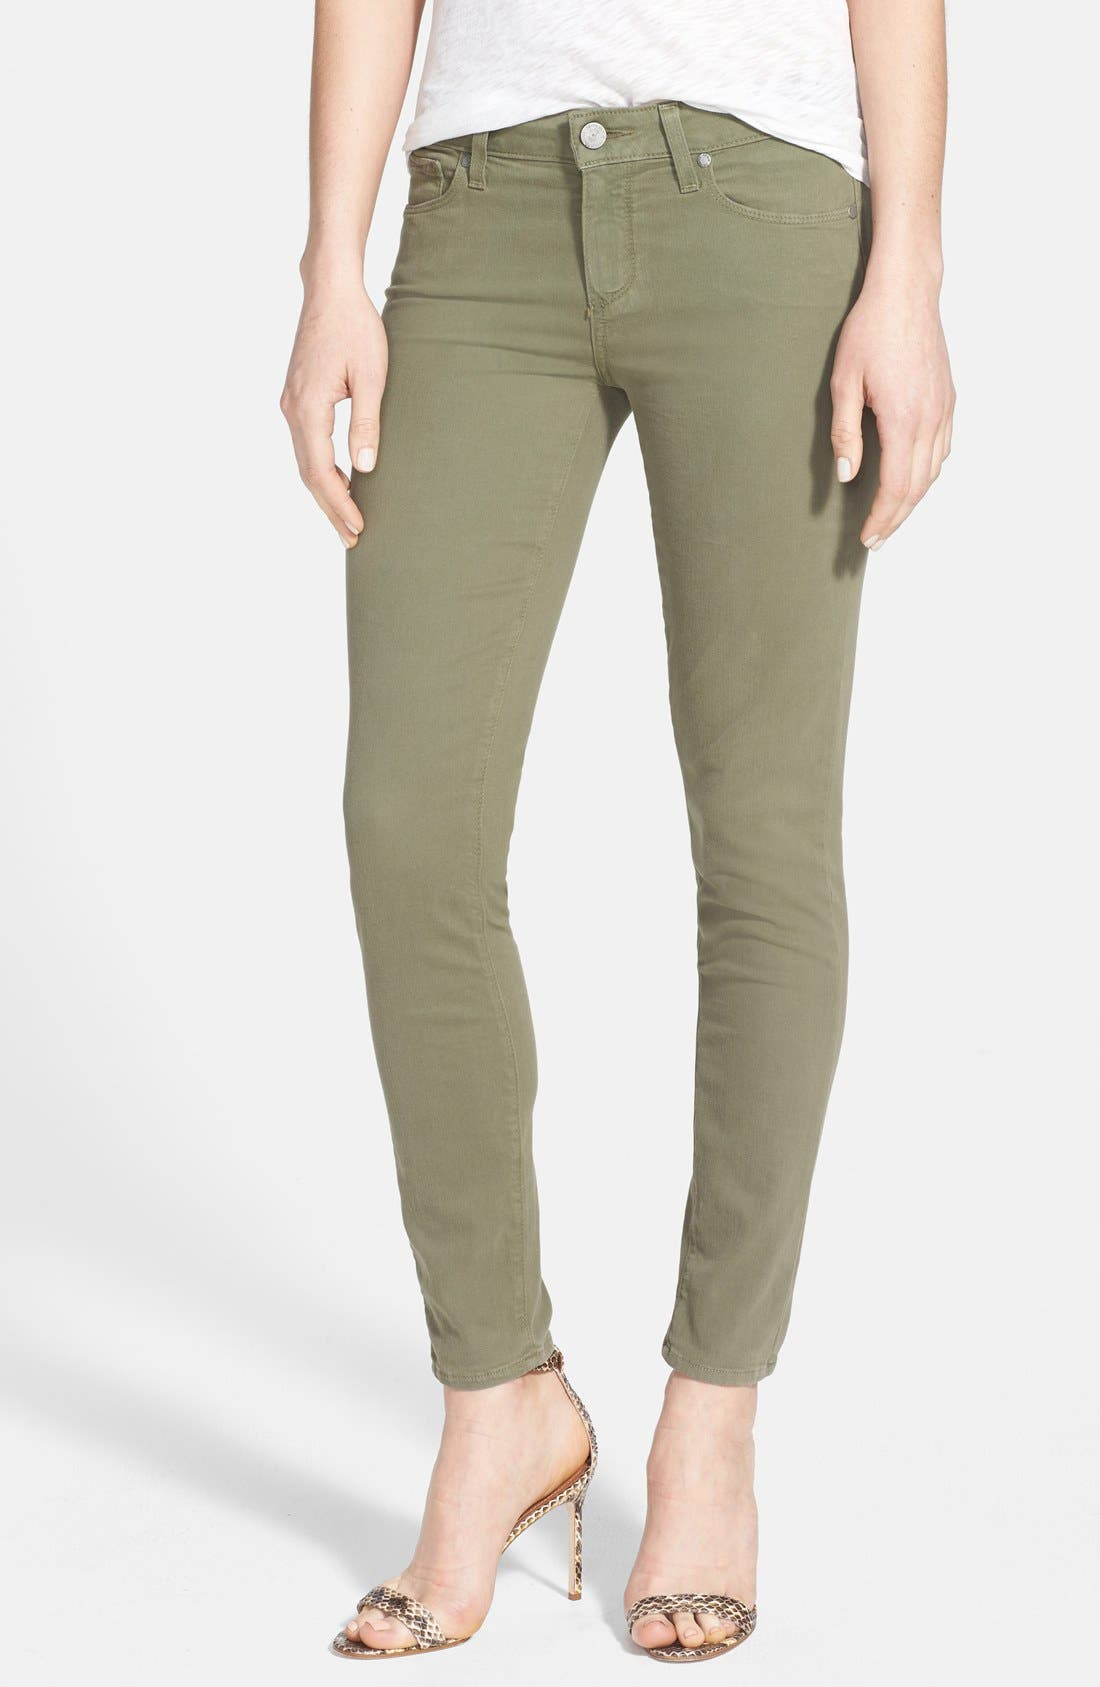 Main Image - Paige Denim 'Verdugo' Ankle Skinny Jeans (Fatigue Green)